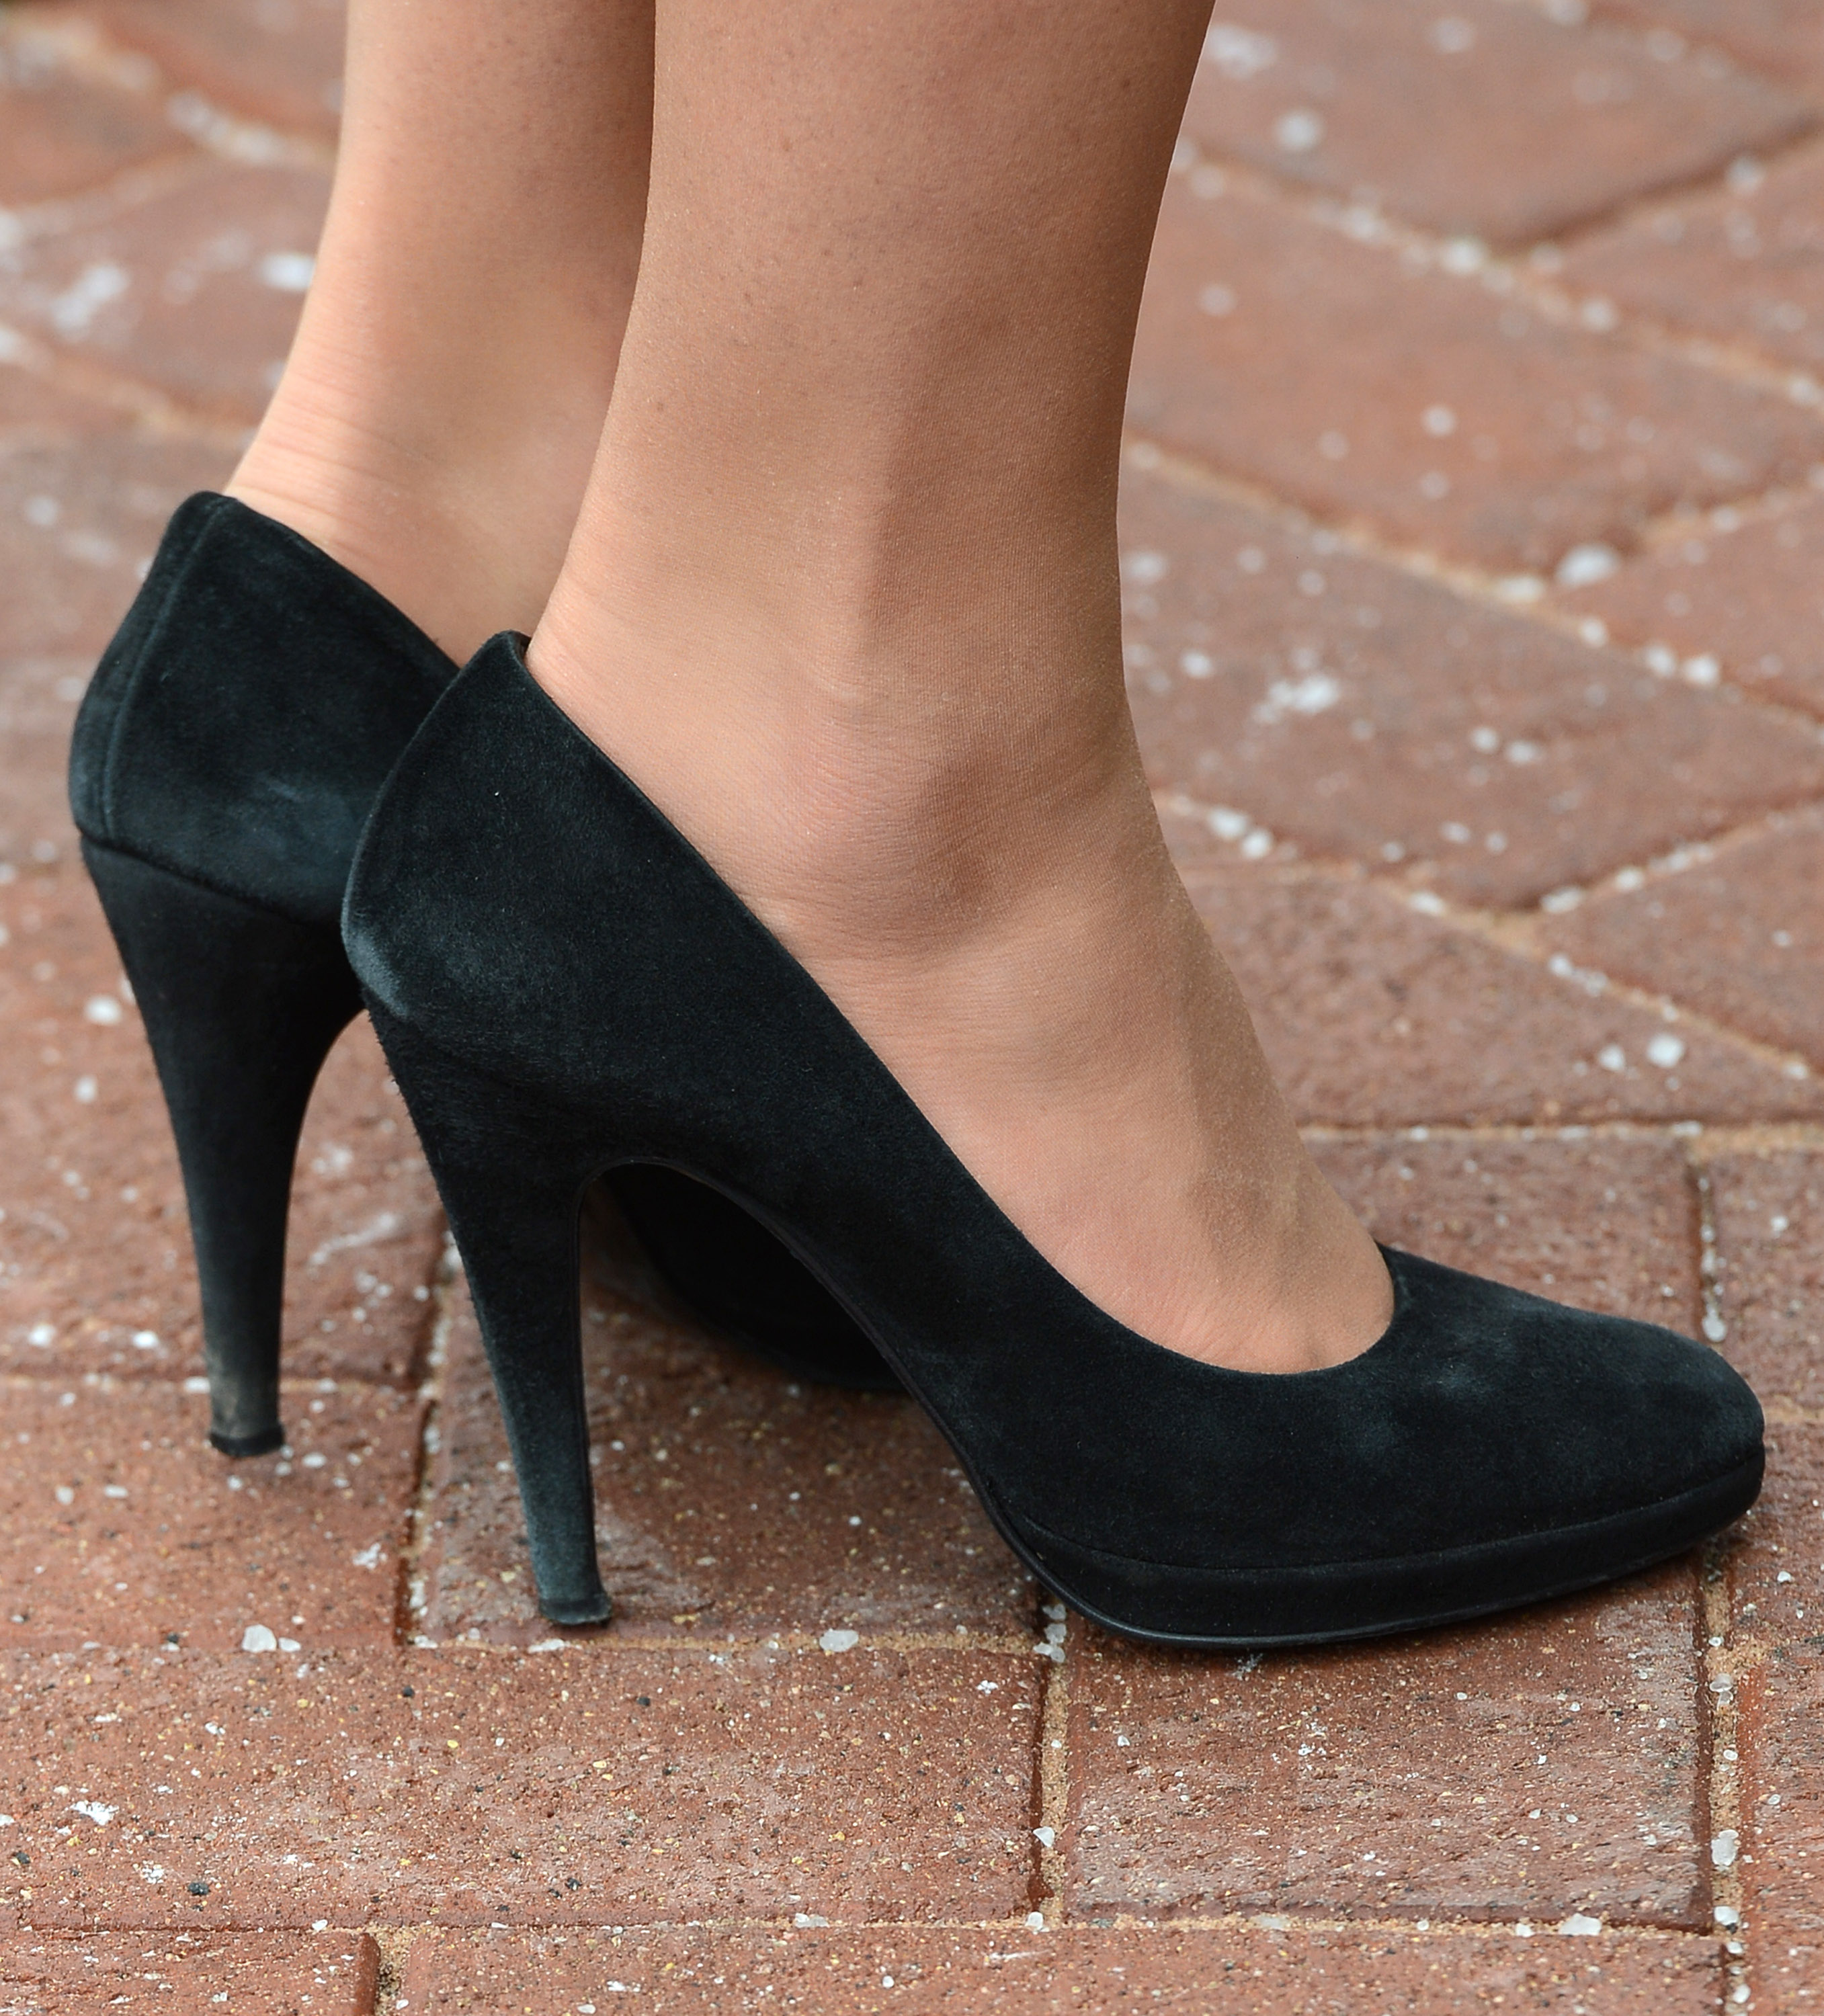 Kate Middleton's Angel Episode Black Suede Heels